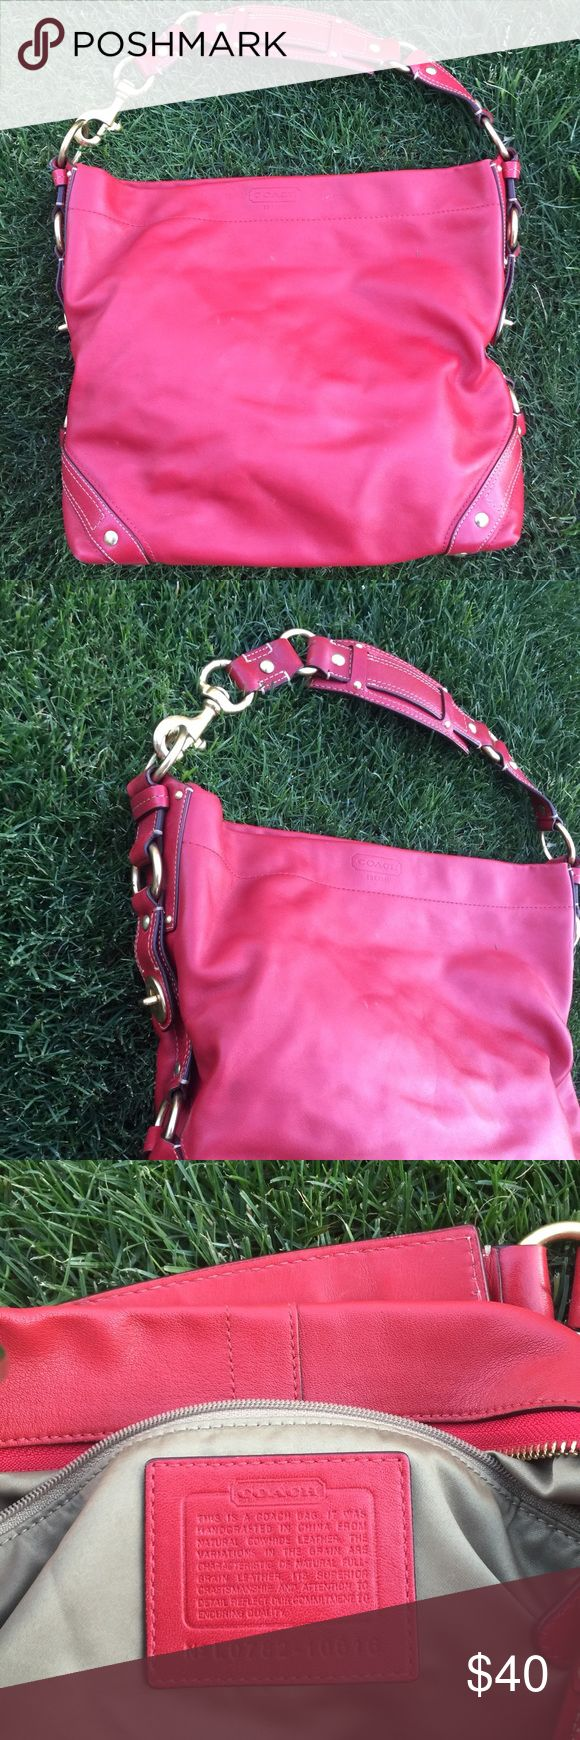 Large Red Leather Coach Hobo Bag with Gold accents Authentic 💯 Gorgeous thick red authentic leather hobo bag. Large sized with some faint markings on leather (pictured). Serial number pictured also. Coach Bags Hobos